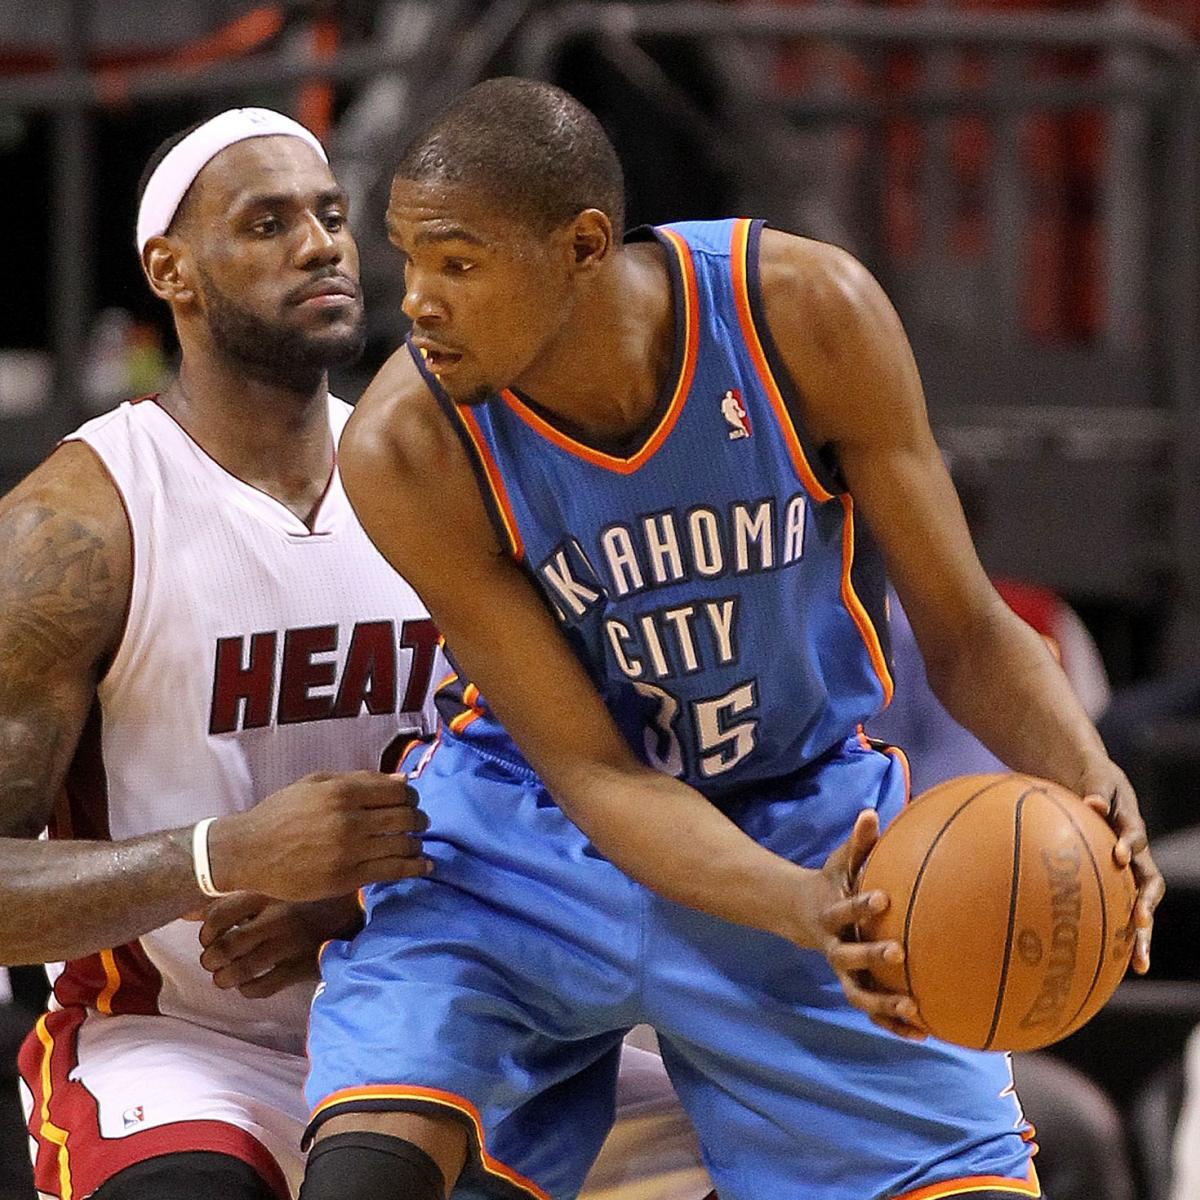 e223d20cad4e Kevin Durant vs. LeBron James  Contrasting Styles of NBA Superstardom